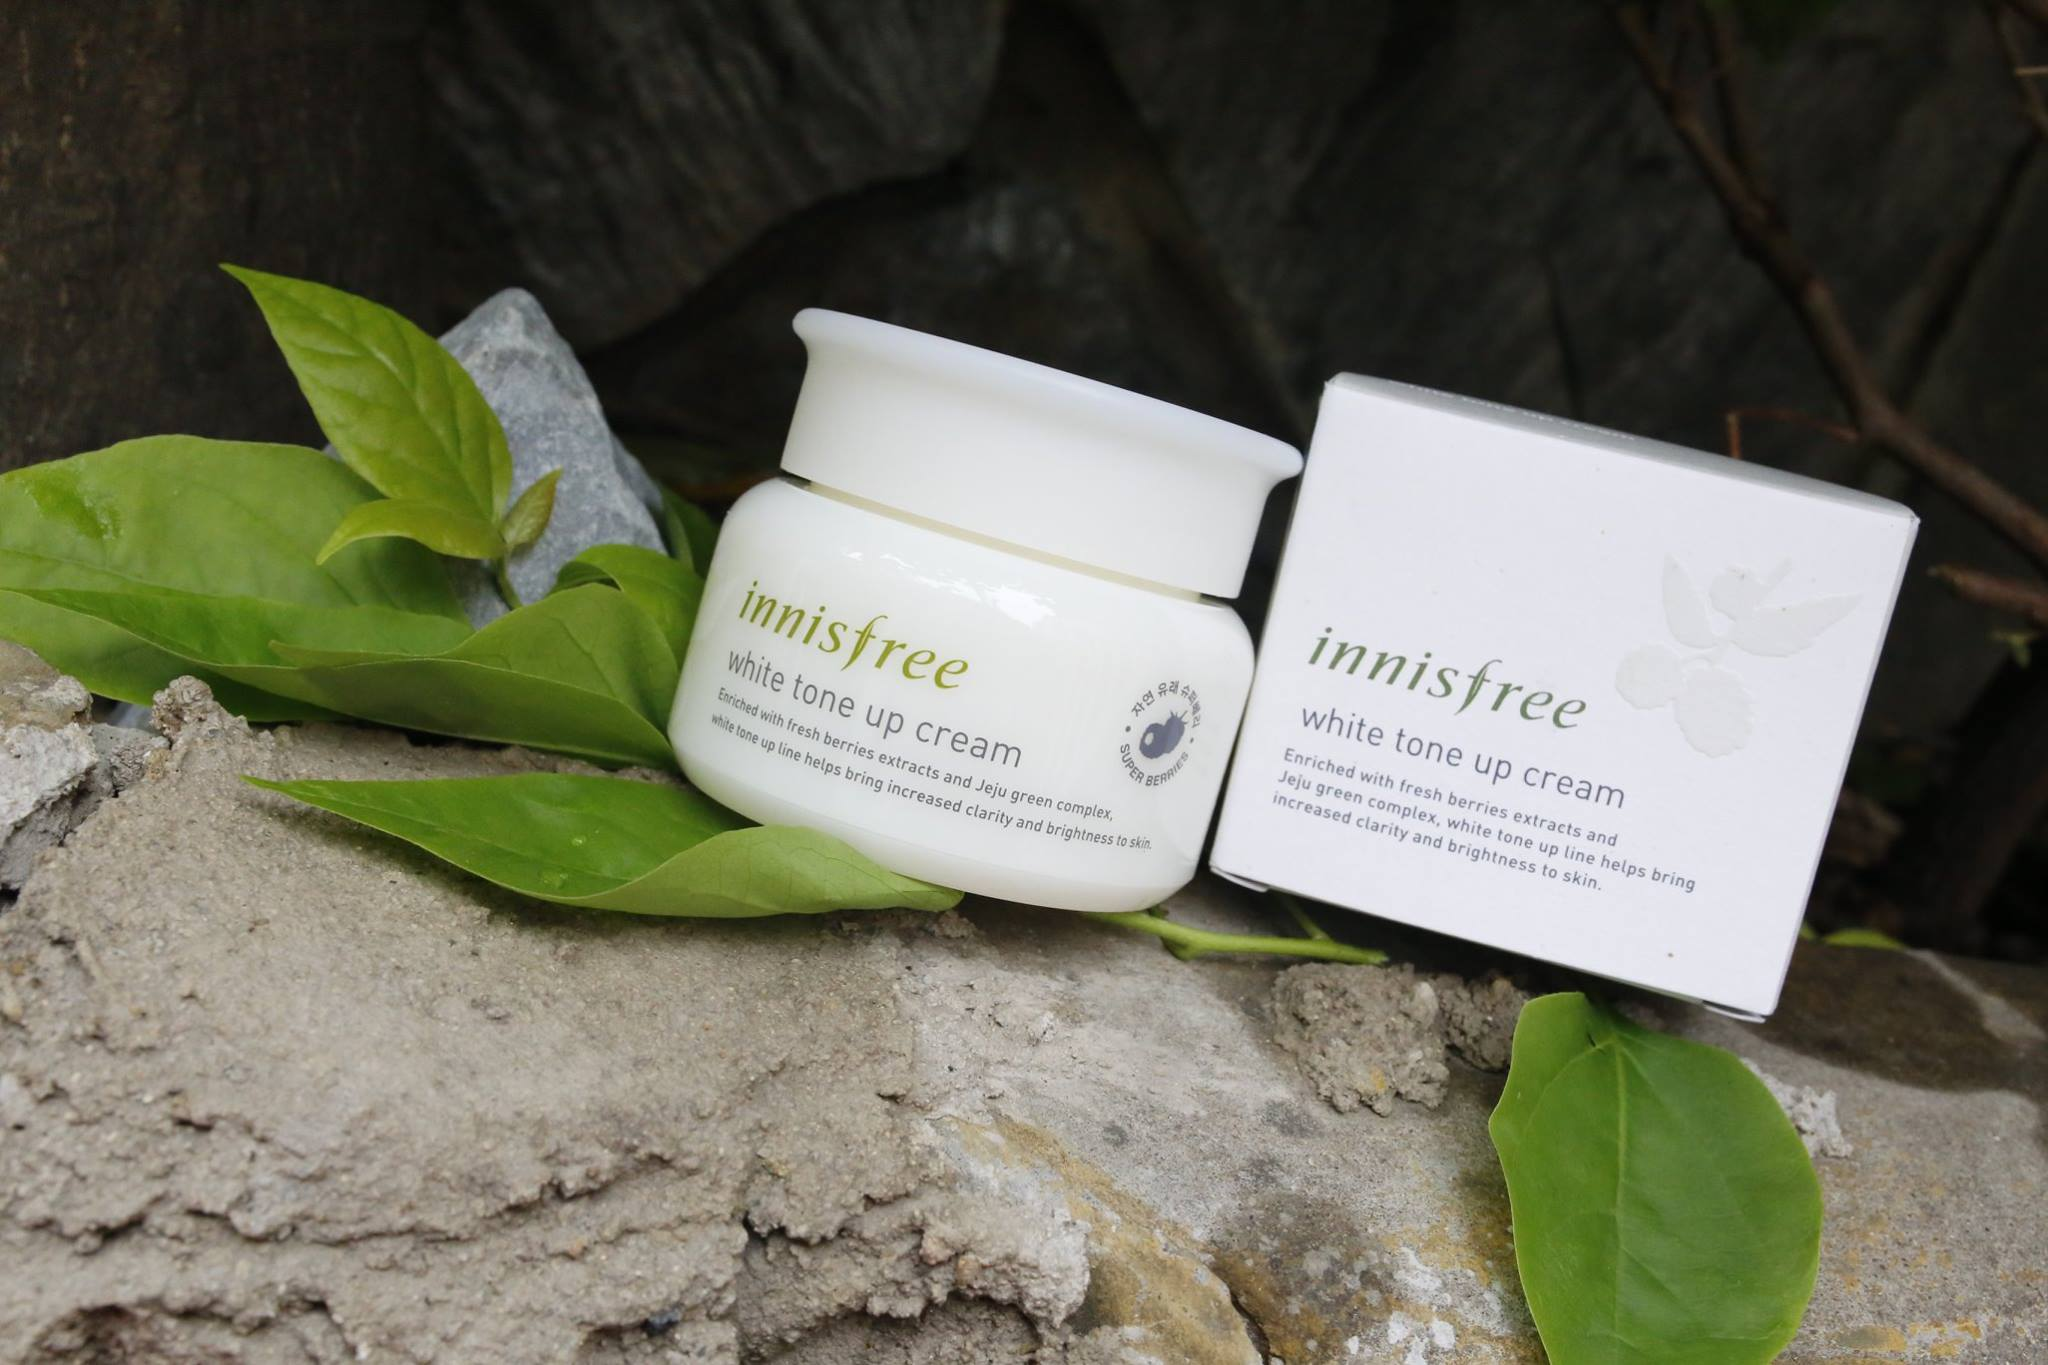 Innisfree White Tone Up Cream